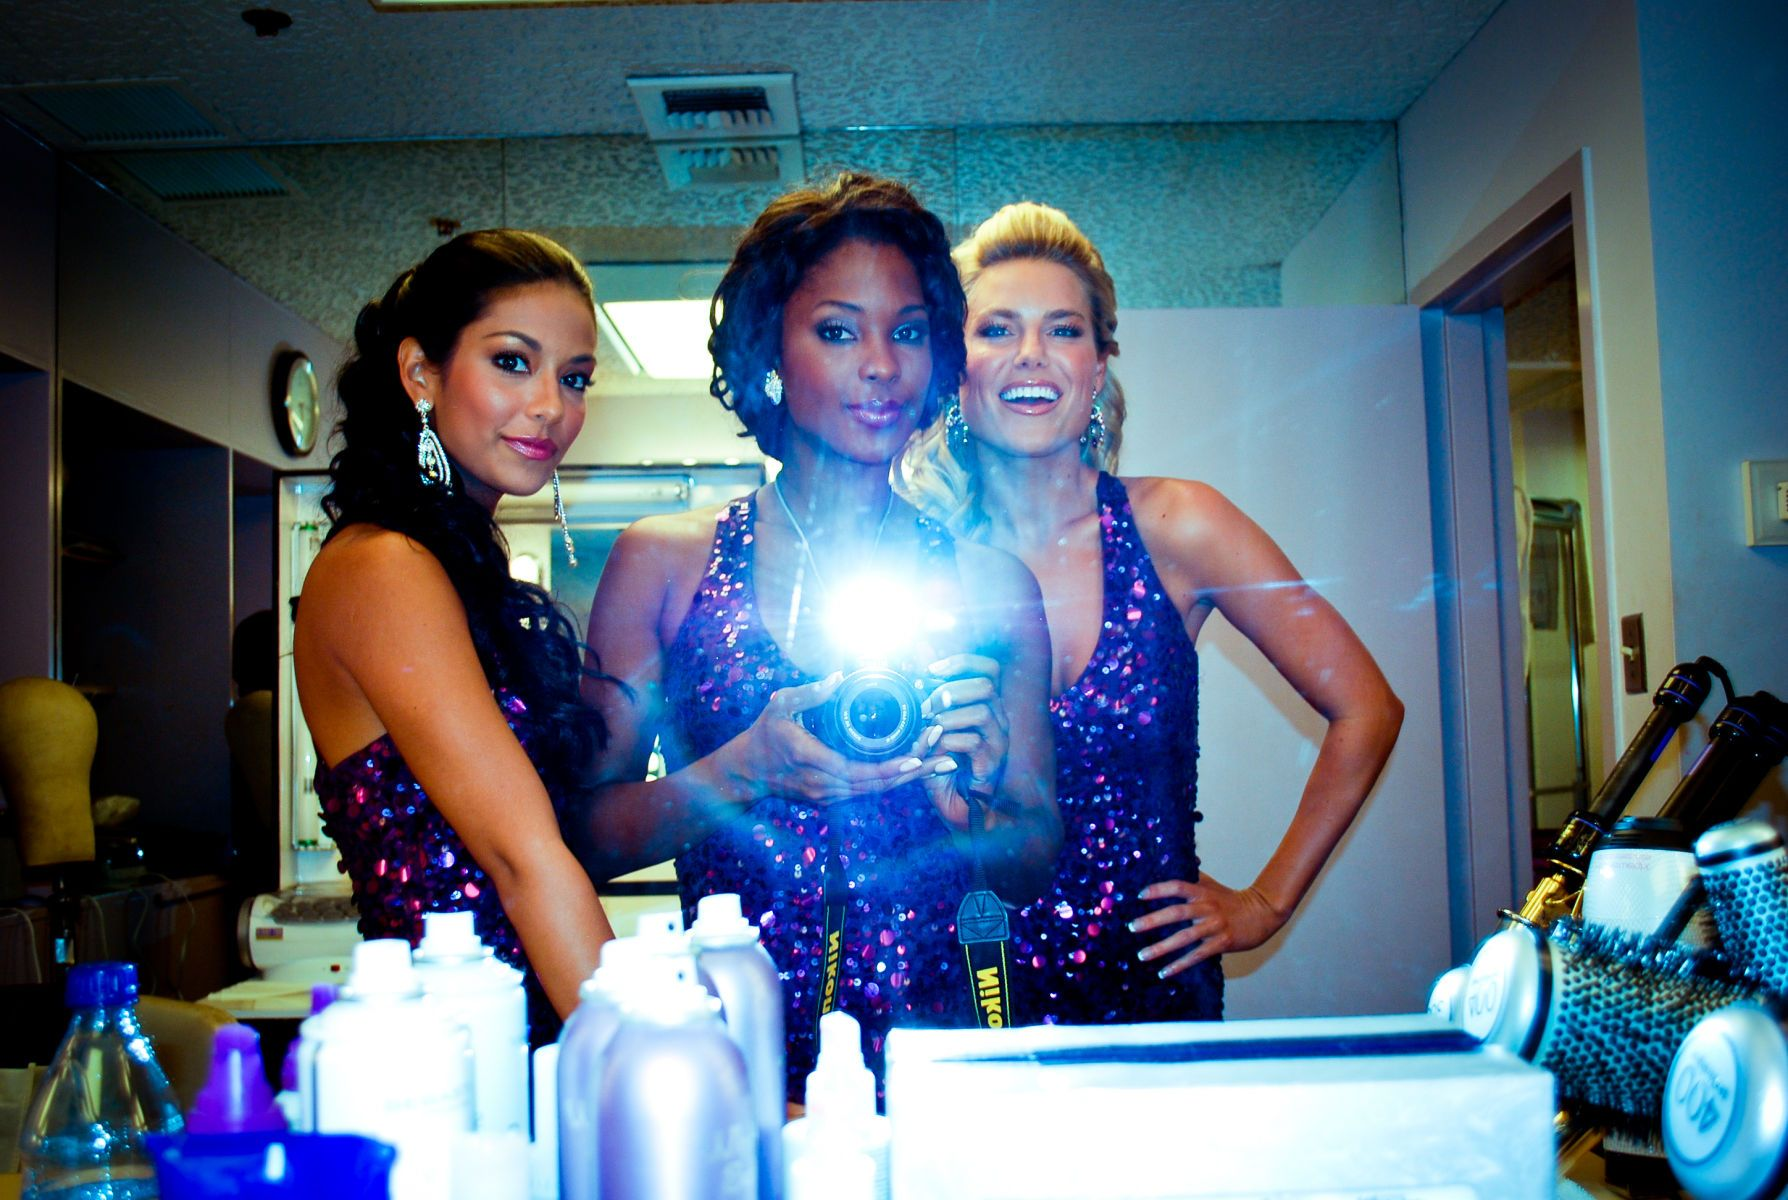 Manuela Arbelaez, Lanisha Cole, and Rachel Reynolds Backstage Beauties by Lanisha Cole PhotographyBehind The Scenes at The Price Is Right Television CityTelevision City